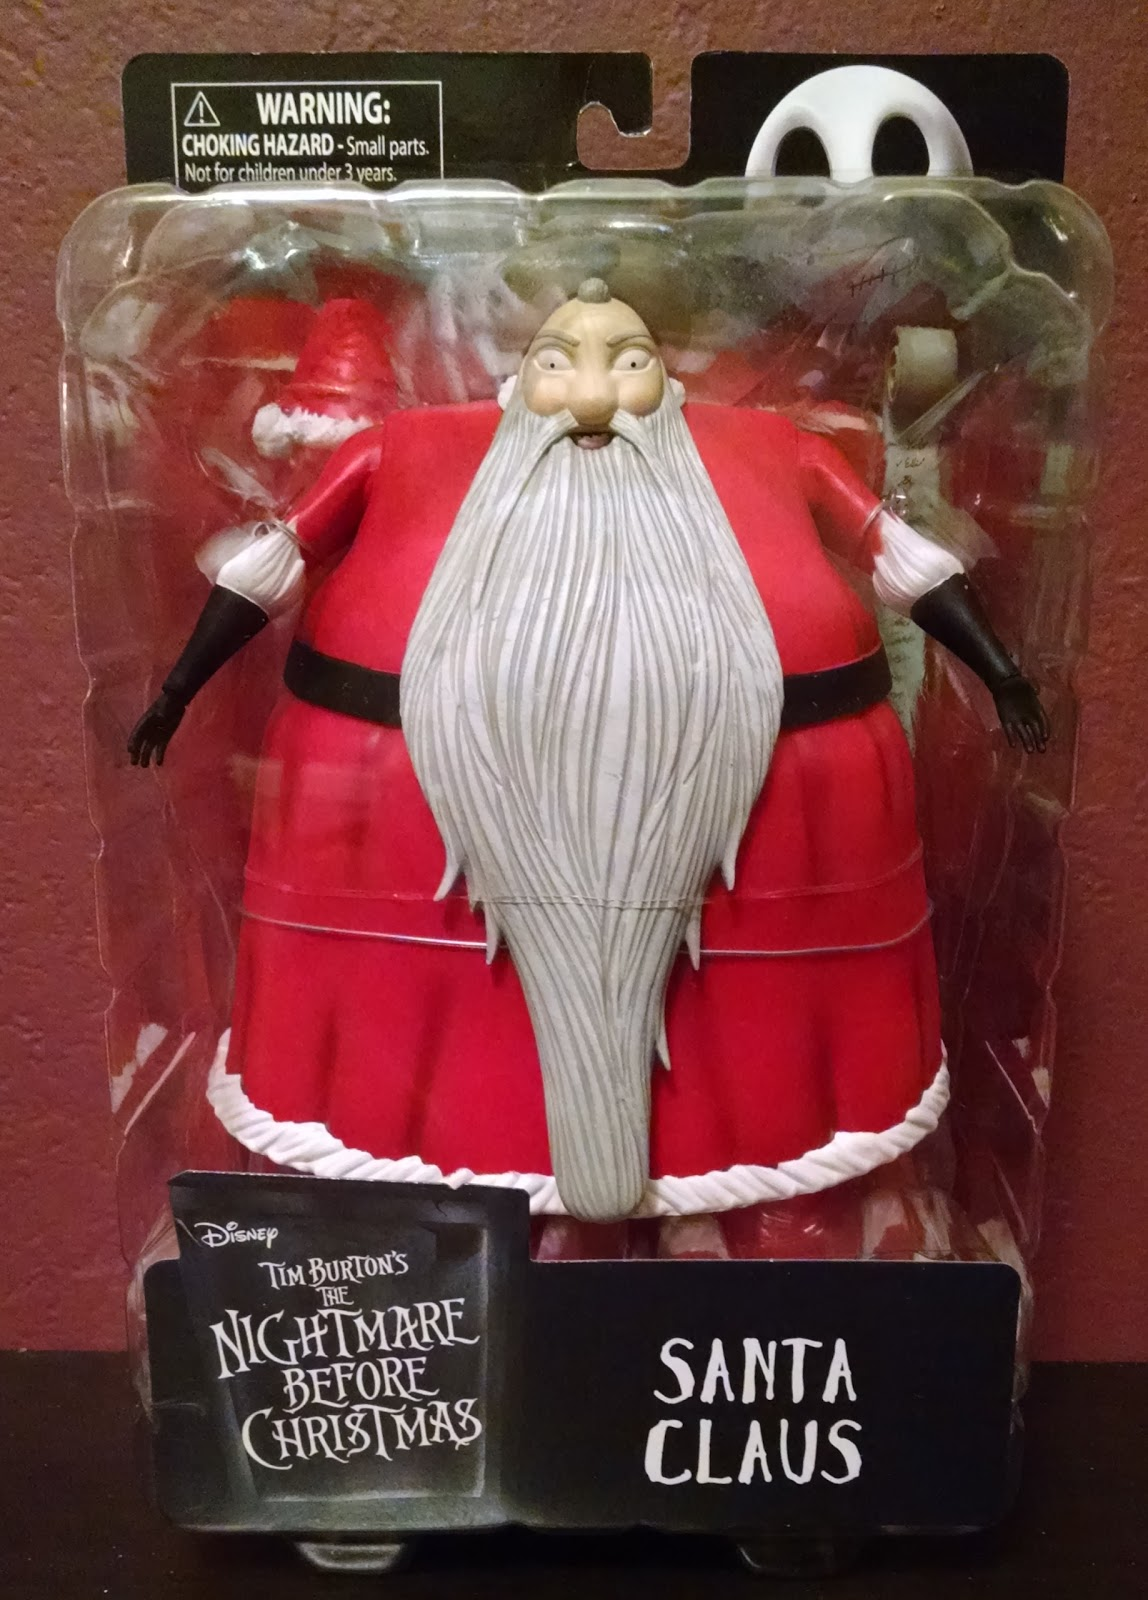 Toy Review: Diamond Select Nightmare Before Christmas: Santa Claus